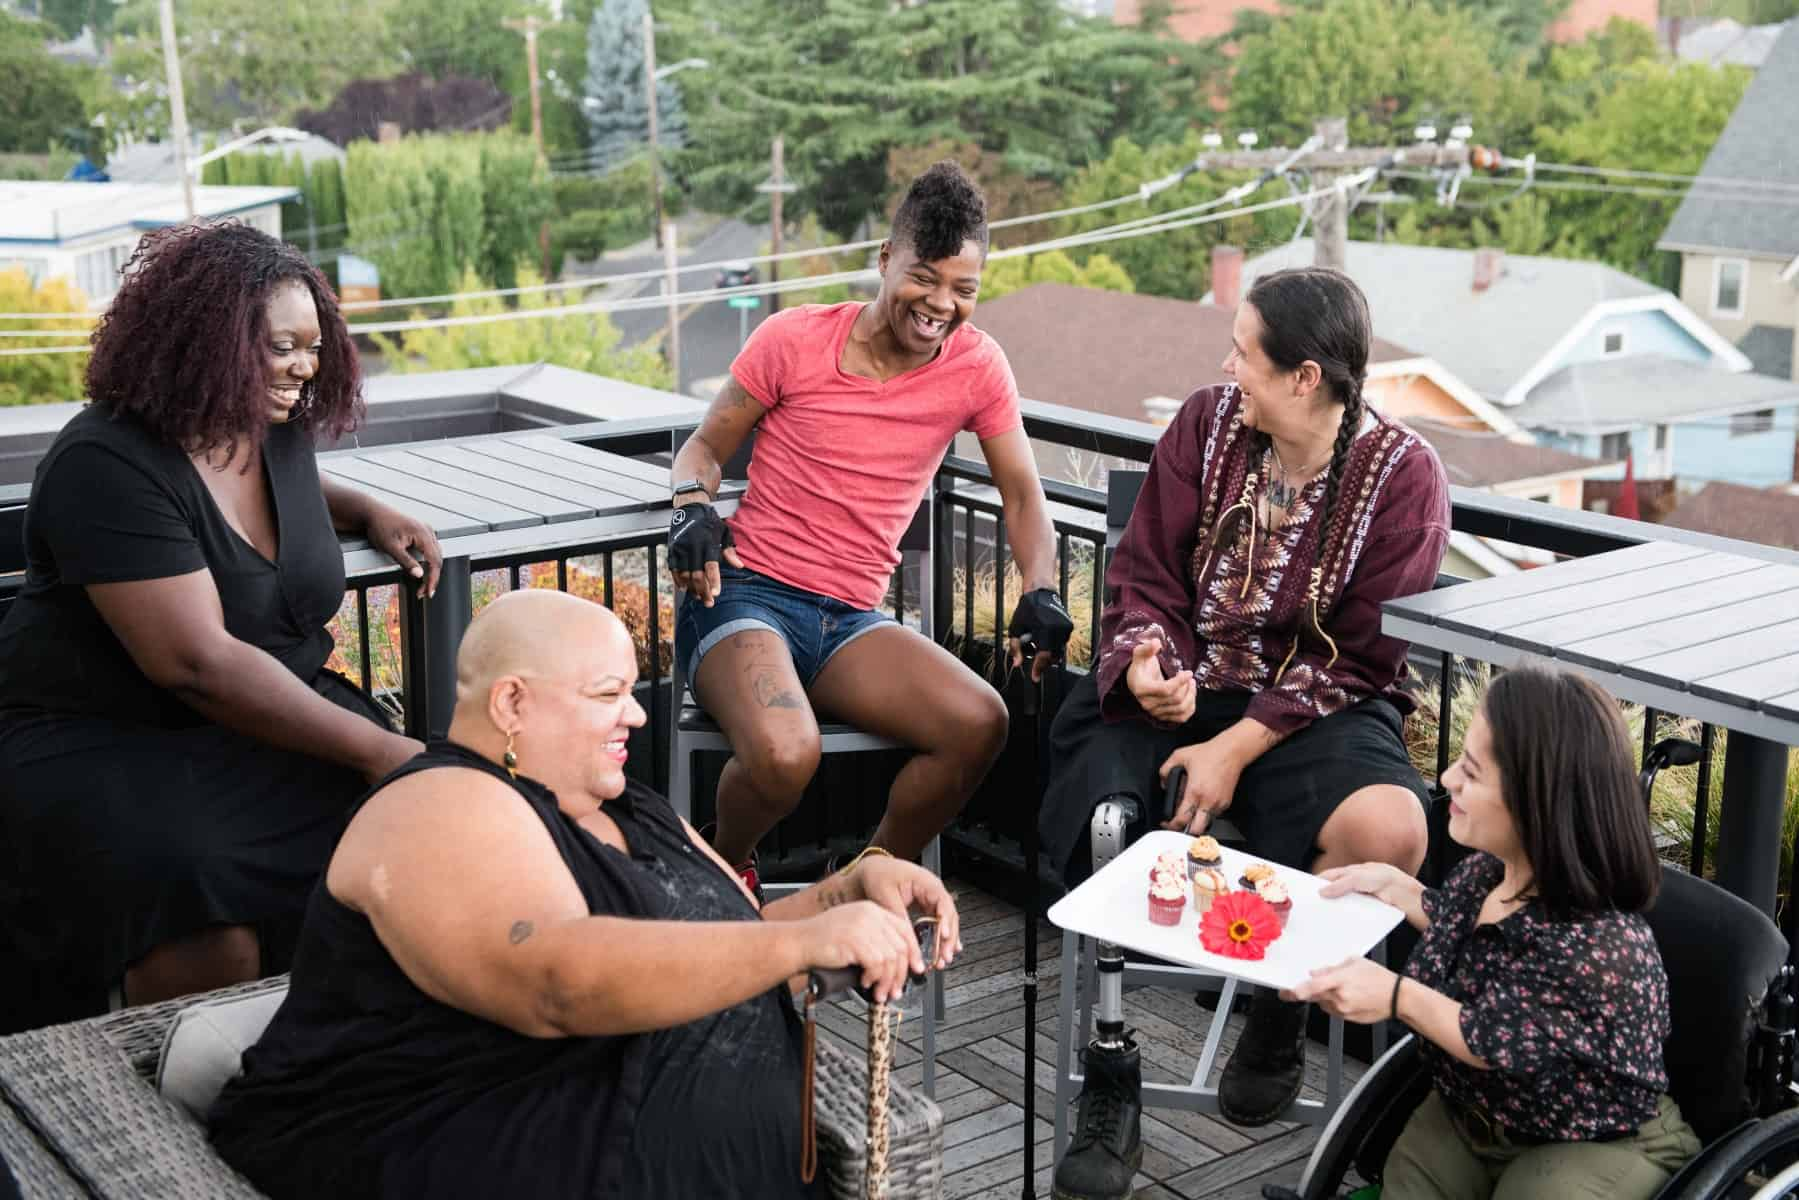 A South Asian person in a wheelchair brings mini cupcakes out on a platter to four other excited disabled people of color. They are all sitting around a rooftop deck.